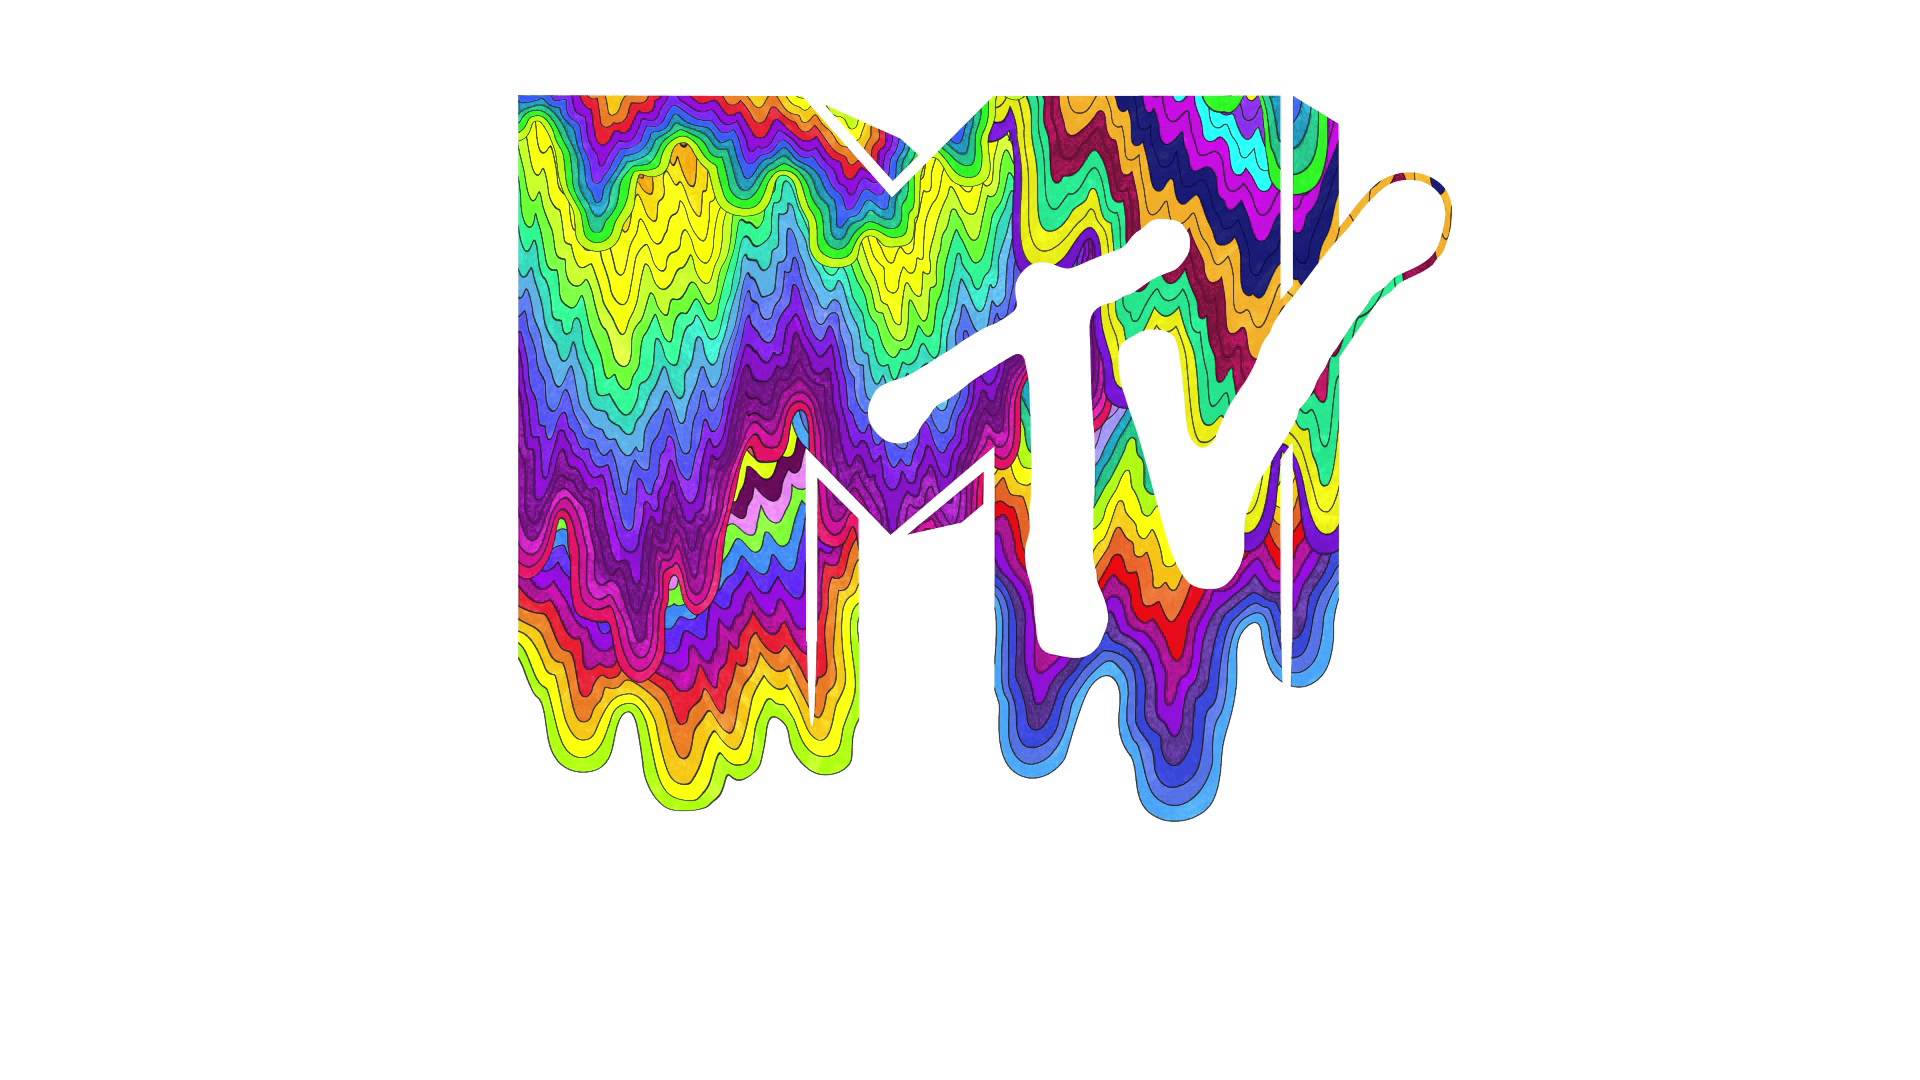 Discovery Channel Hd Wallpapers Mtv Wallpapers Wallpaper Cave